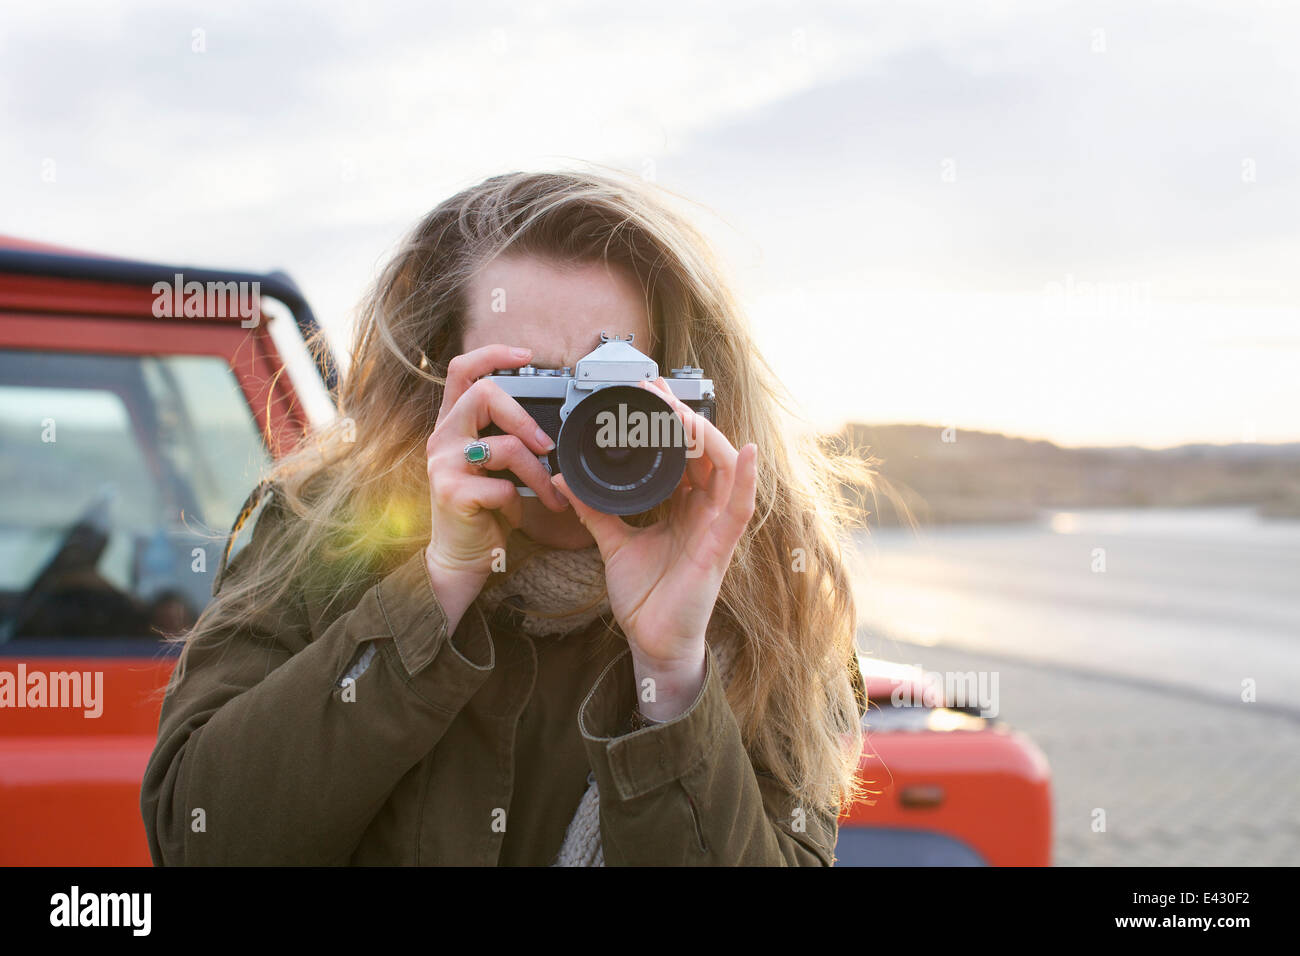 Mid adult woman photographing with SLR in coastal parking lot - Stock Image